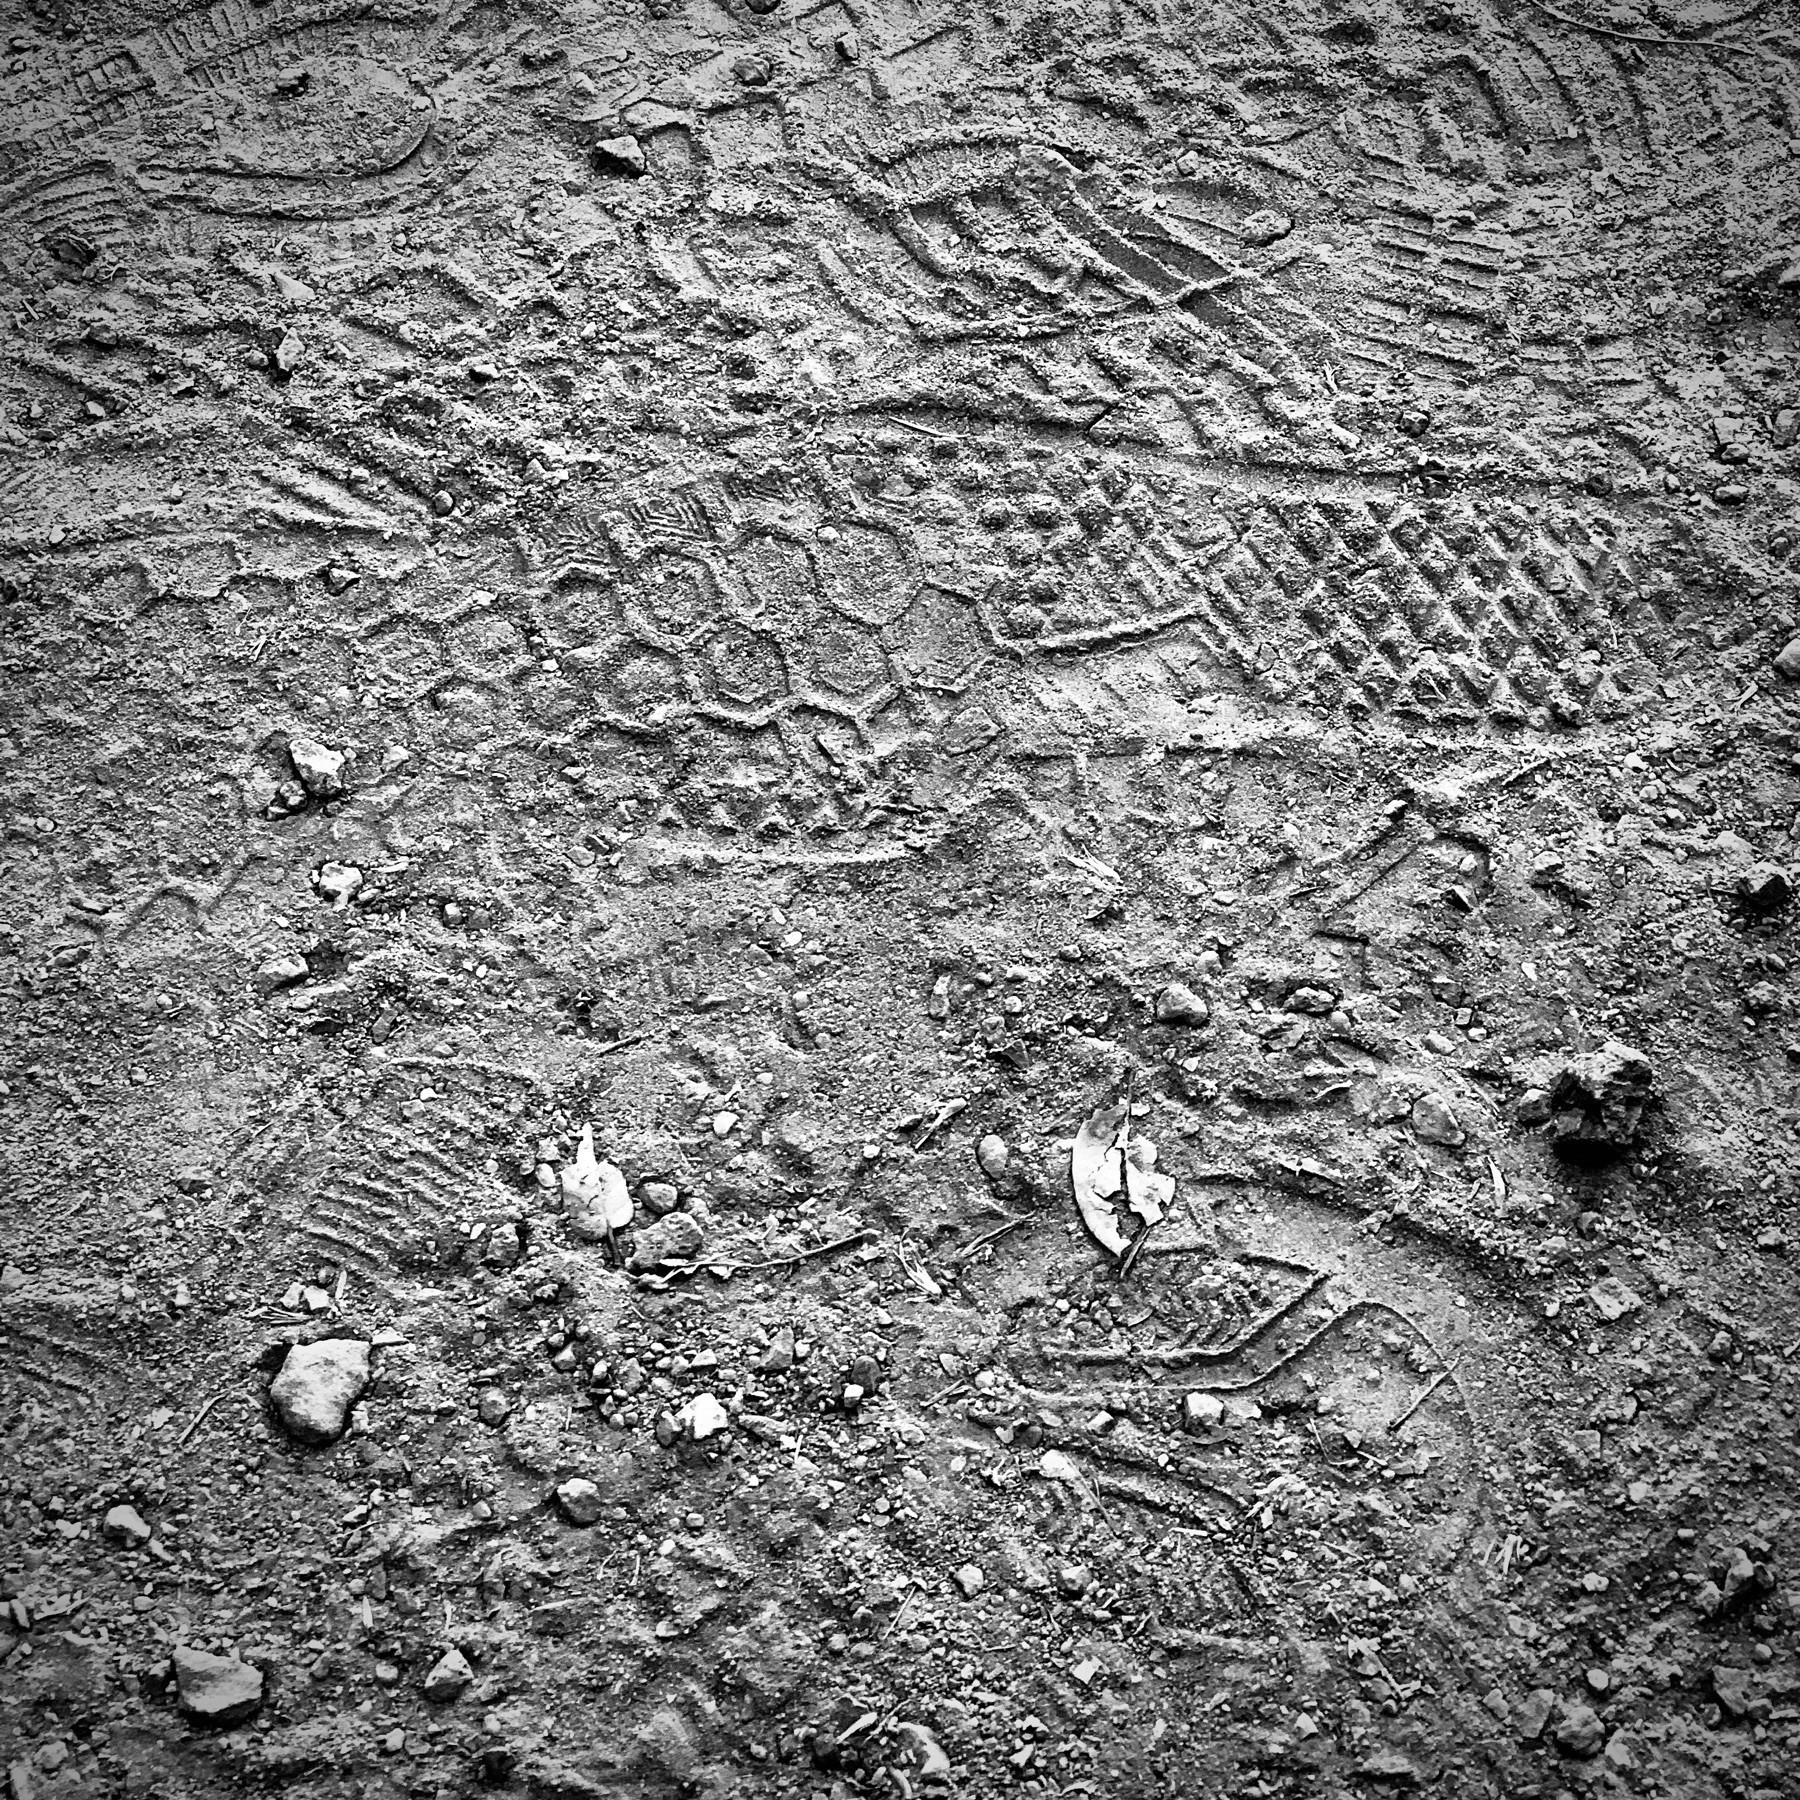 Footprints in dusty rock path, black and white.